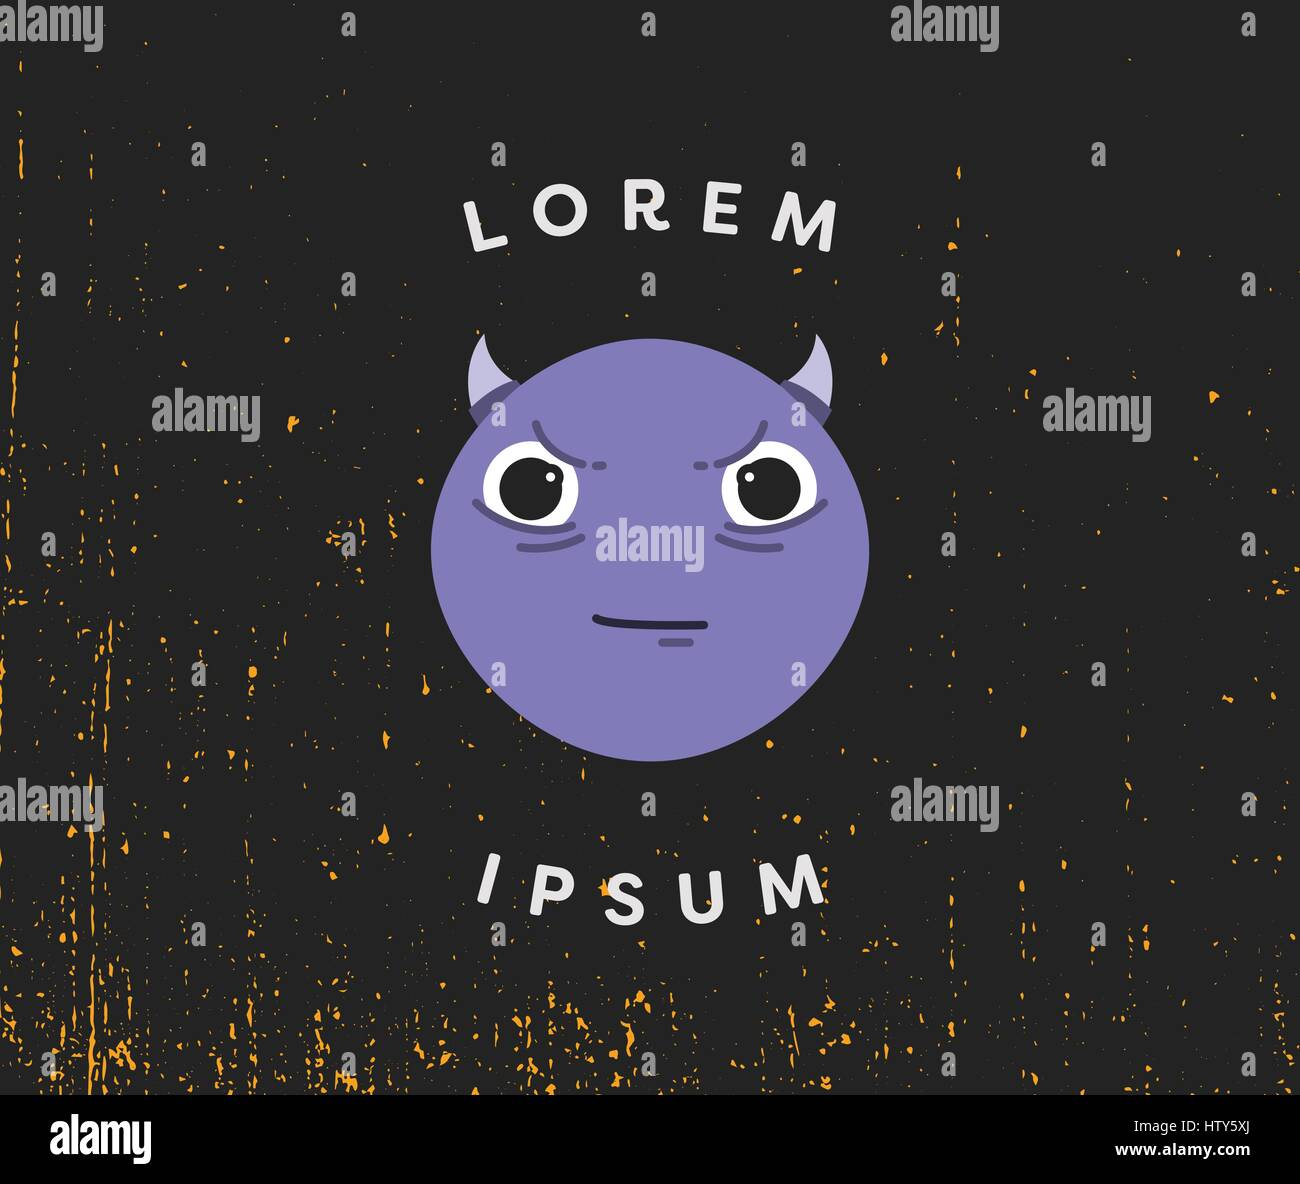 Vector of card with devil emoji and text lorem ipsum - Stock Image